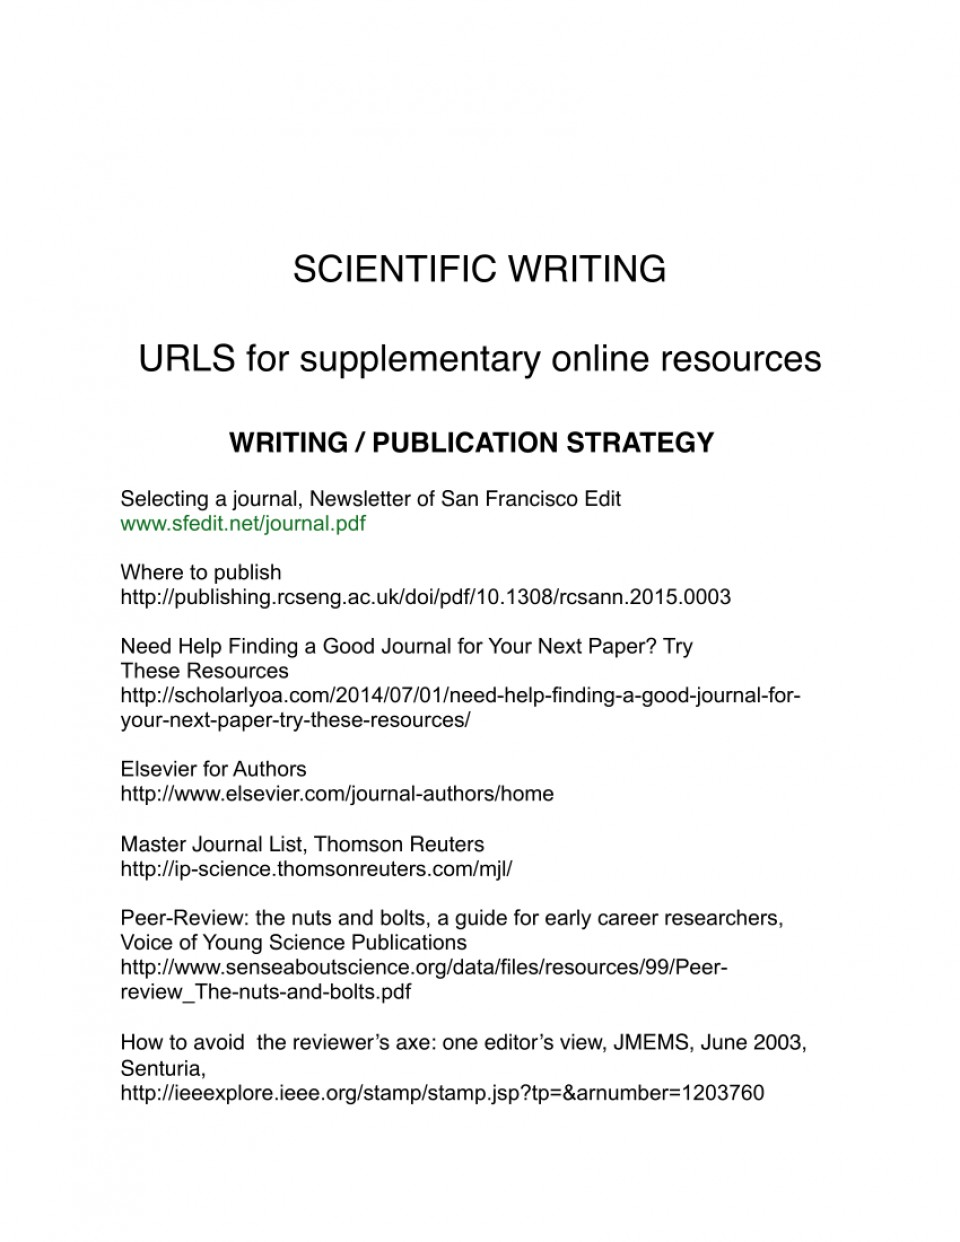 006 How To Write And Publish Scientific Research Paper Pdf Surprising A 960